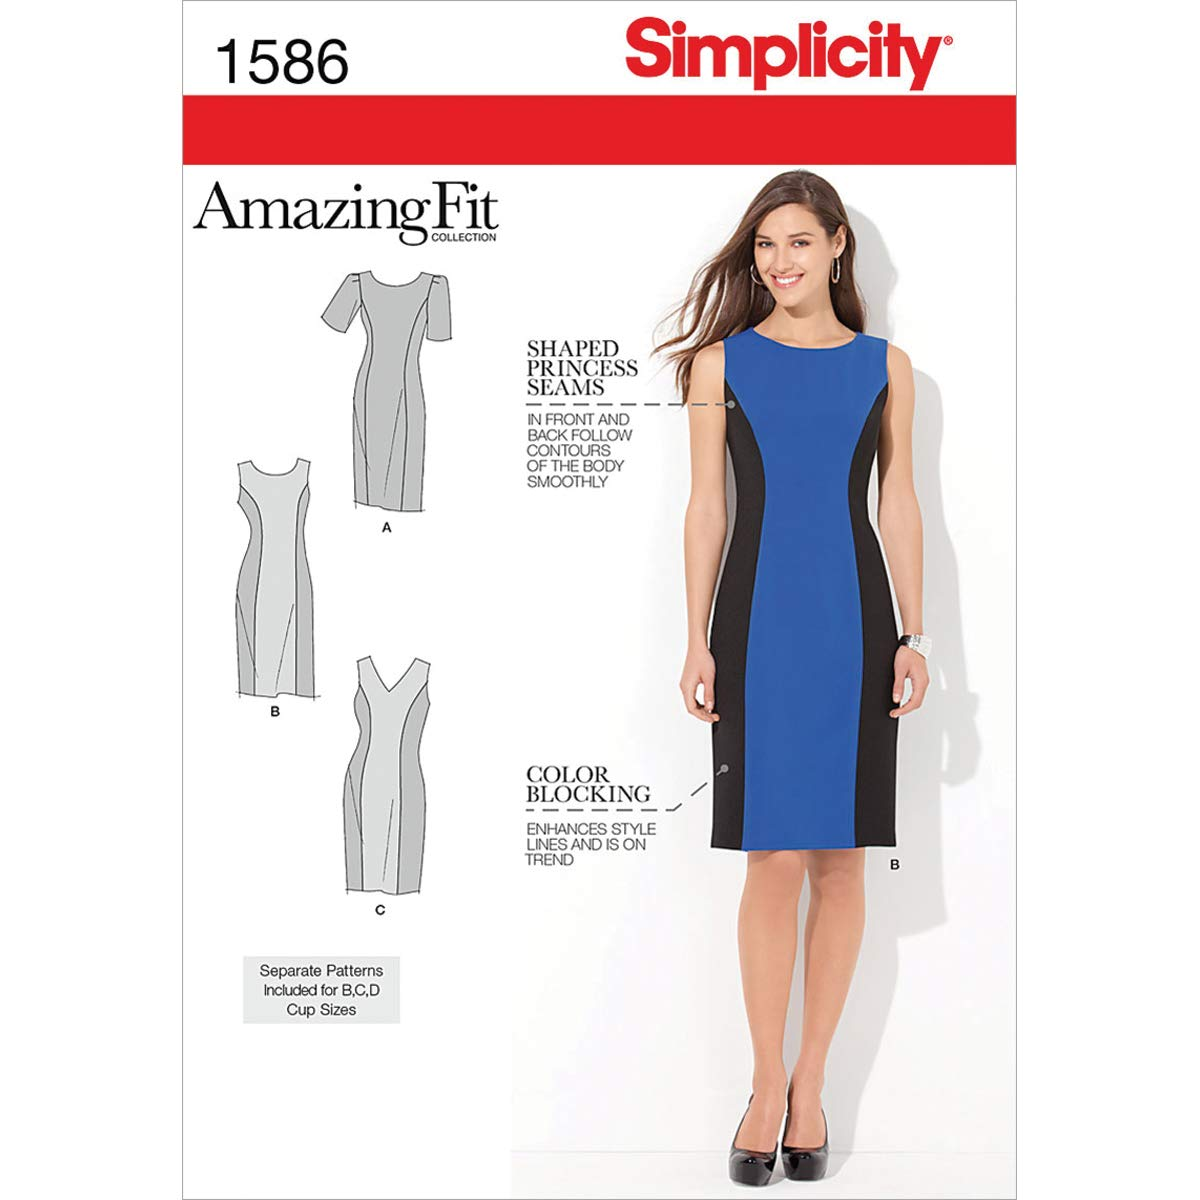 70276fbb3 Simplicity Sewing Pattern 1586: Misses' and Plus Amazing Fit Dress, Size  AA, Paper White, (10-12-14-16-18): Amazon.co.uk: Kitchen & Home